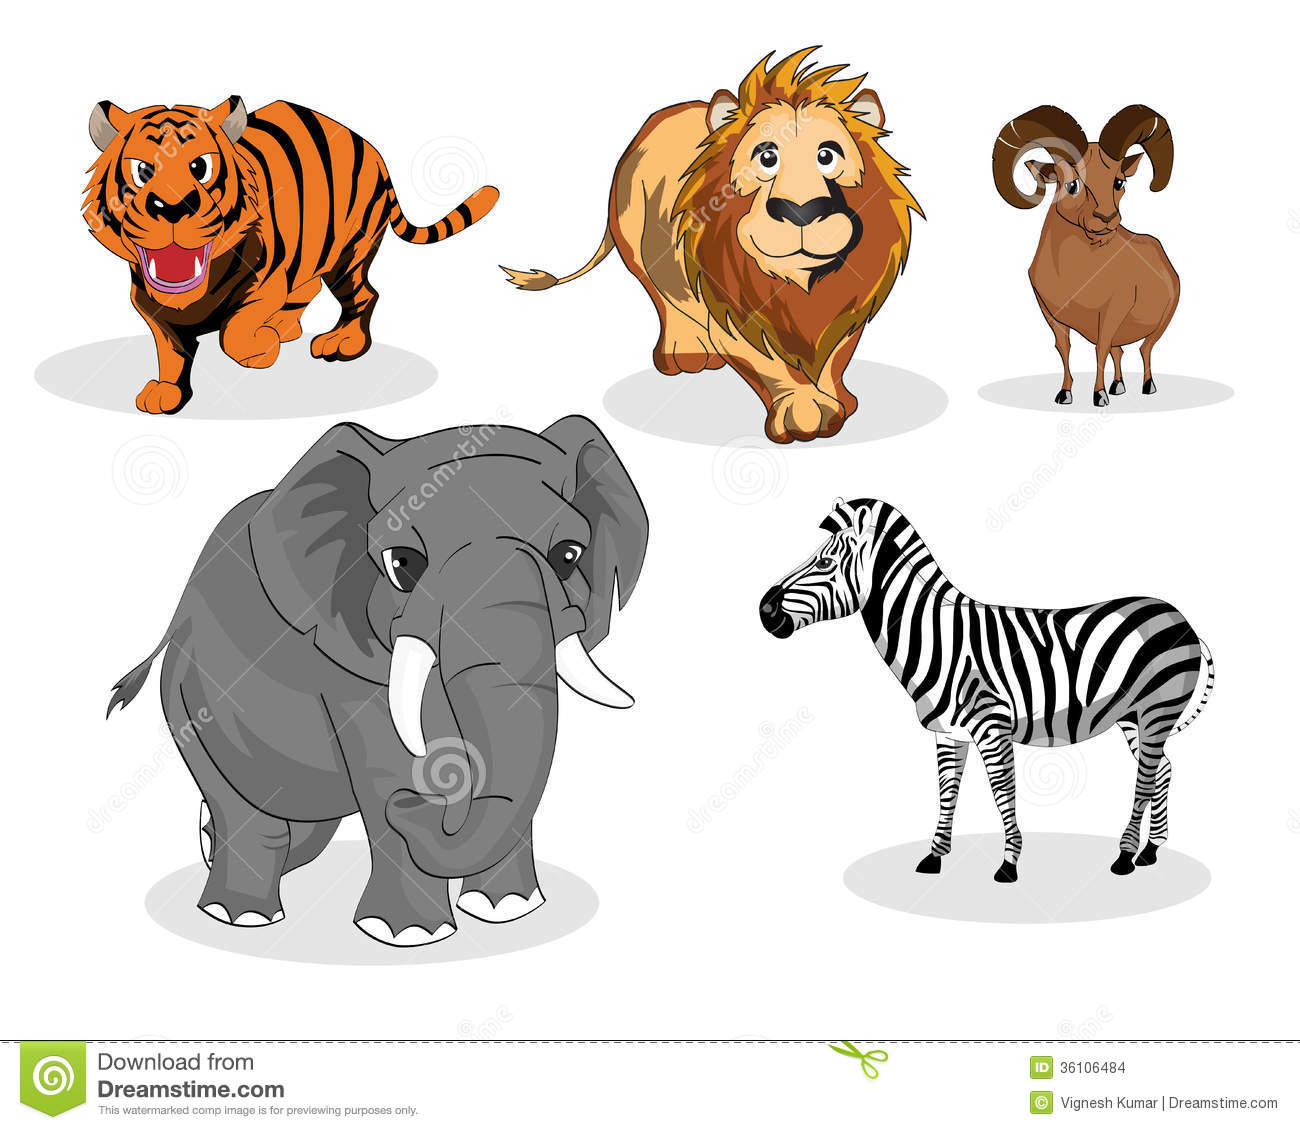 Carnivores clipart - Clipground